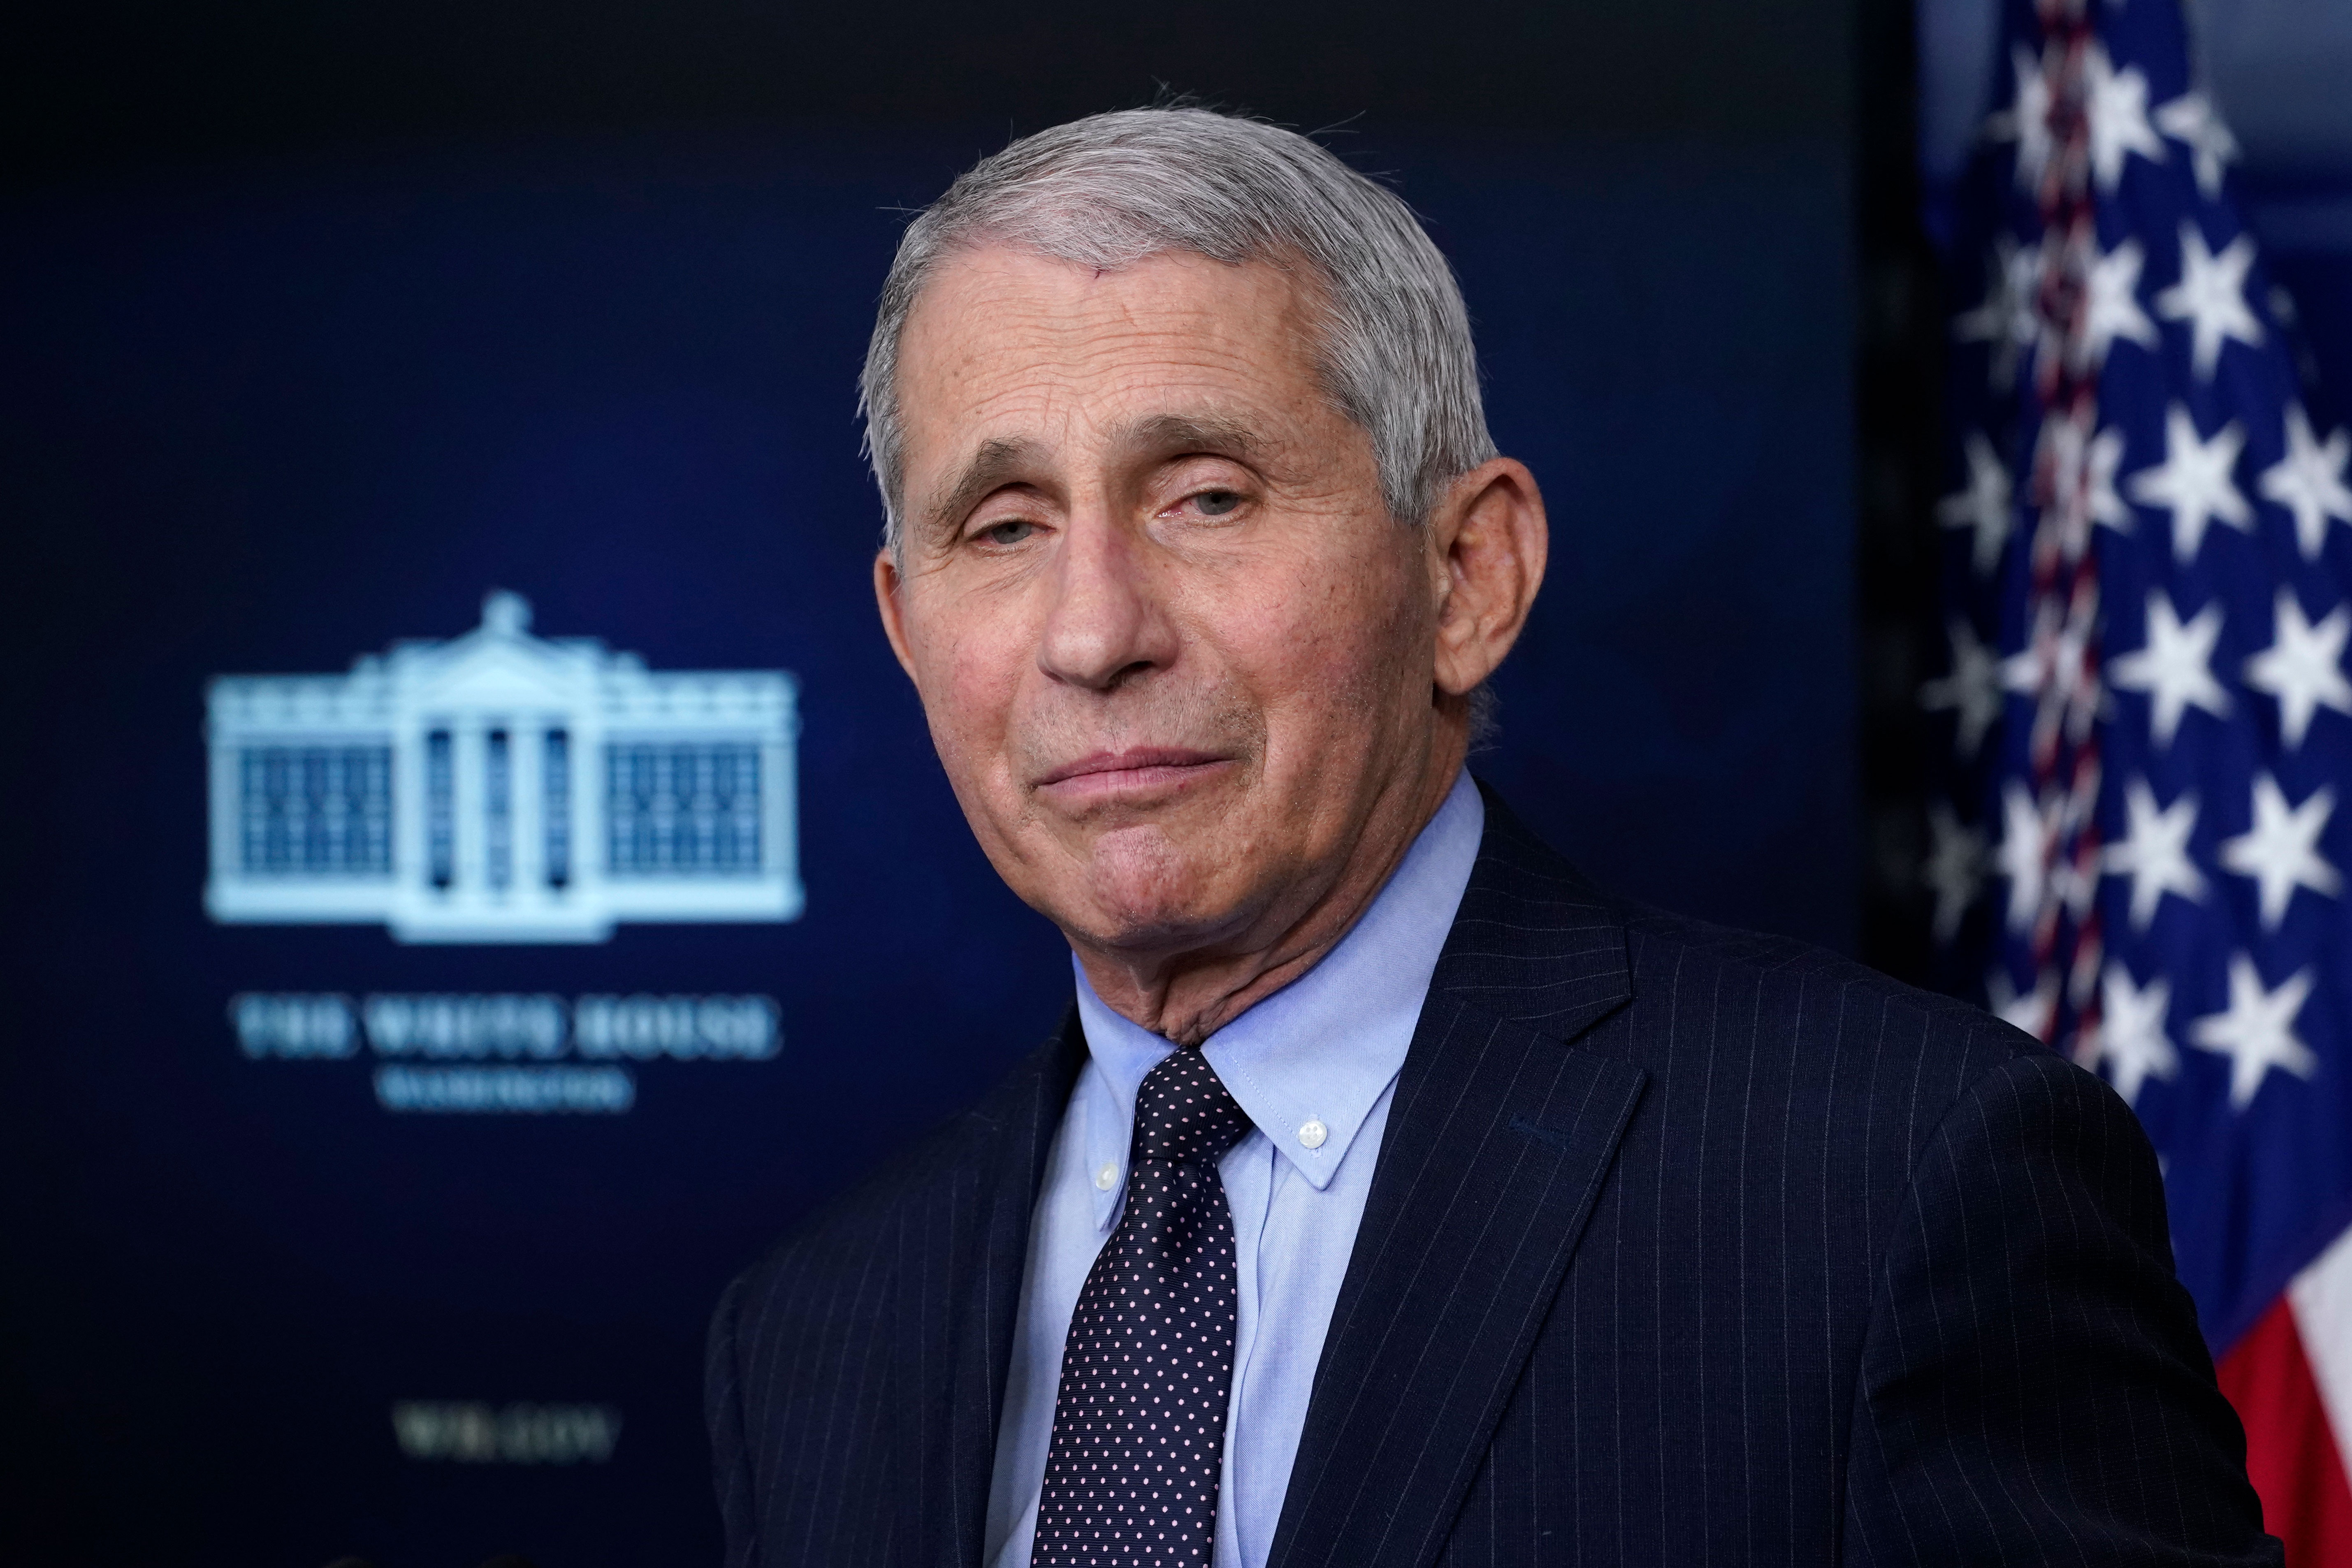 Dr. Anthony Fauci, director of the National Institute of Allergy and Infectious Diseases, speaks with reporters during a briefing at the White House on January 21.